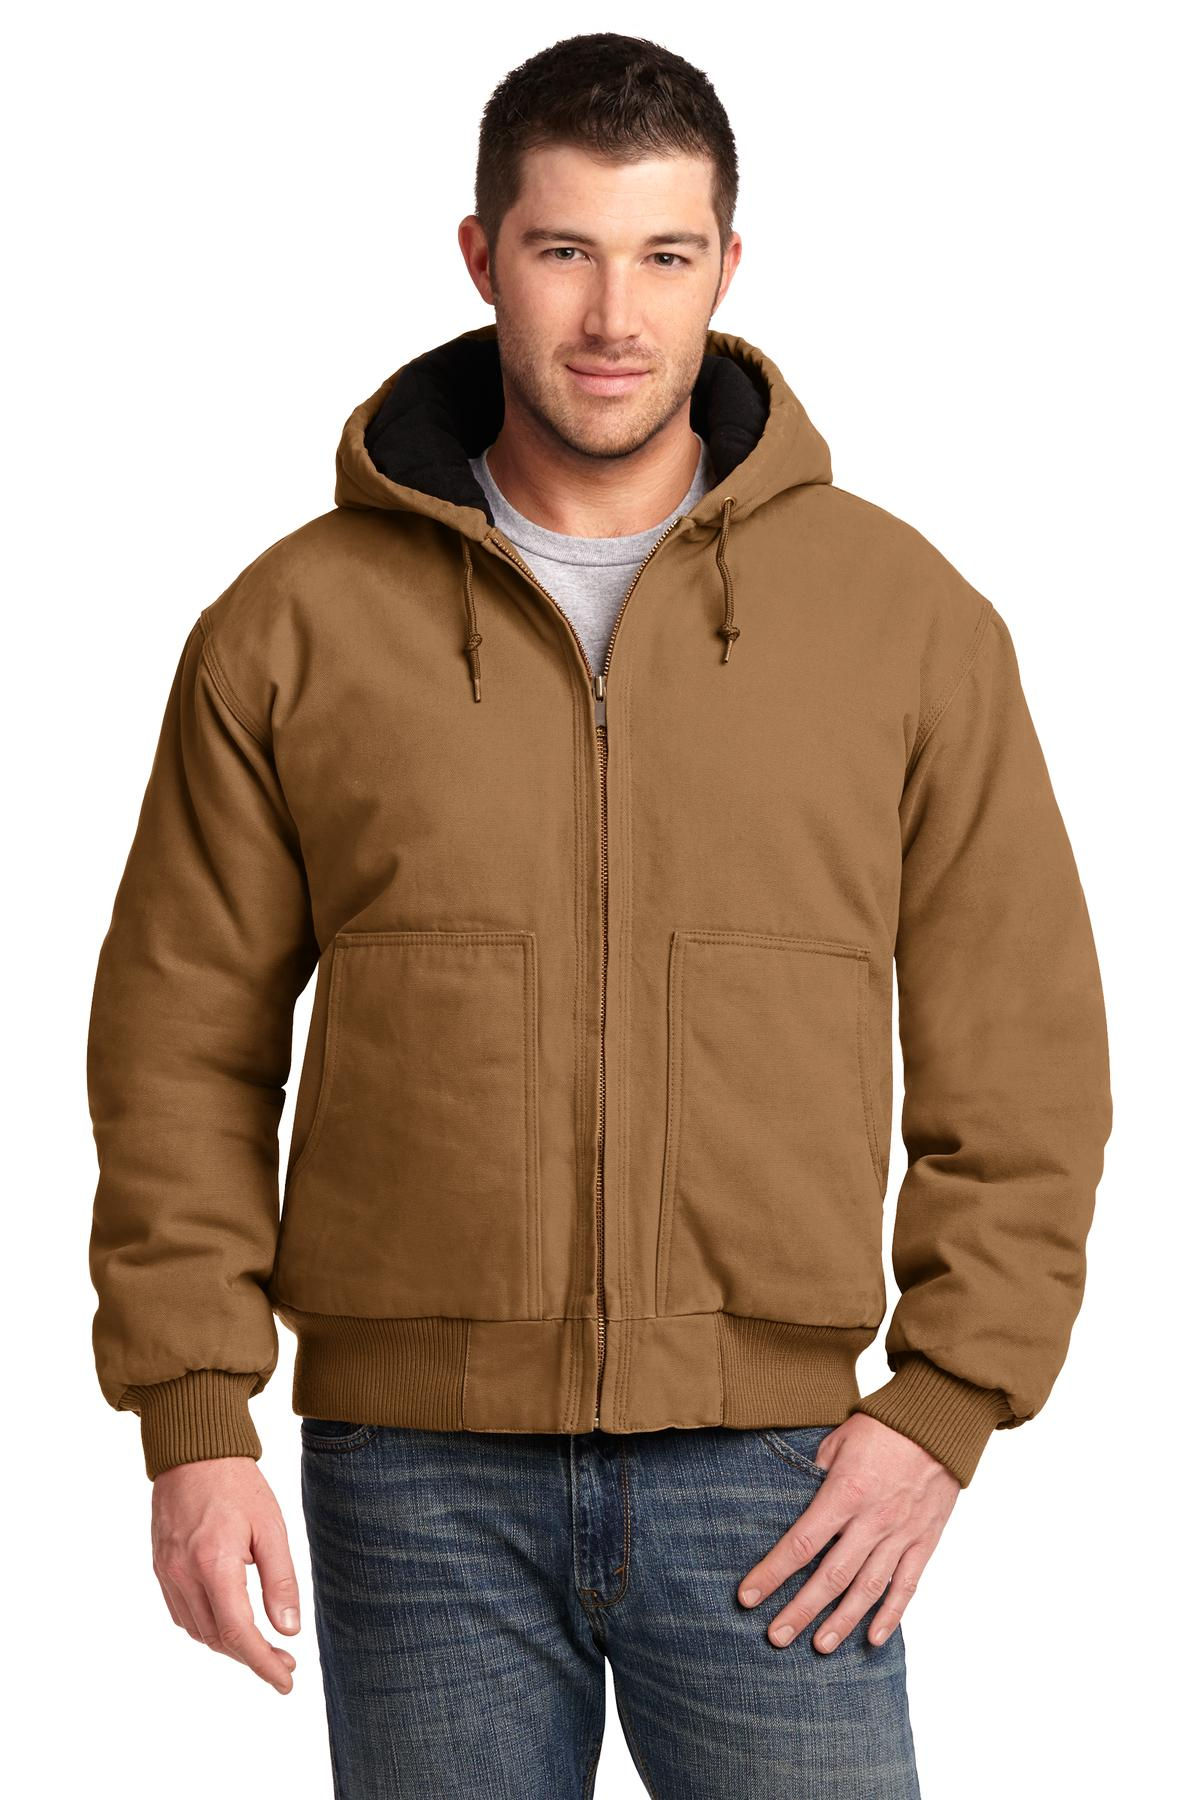 CornerStone ®  Washed Duck Cloth Insulated Hooded Work Jacket. CSJ41 - Duck Brown